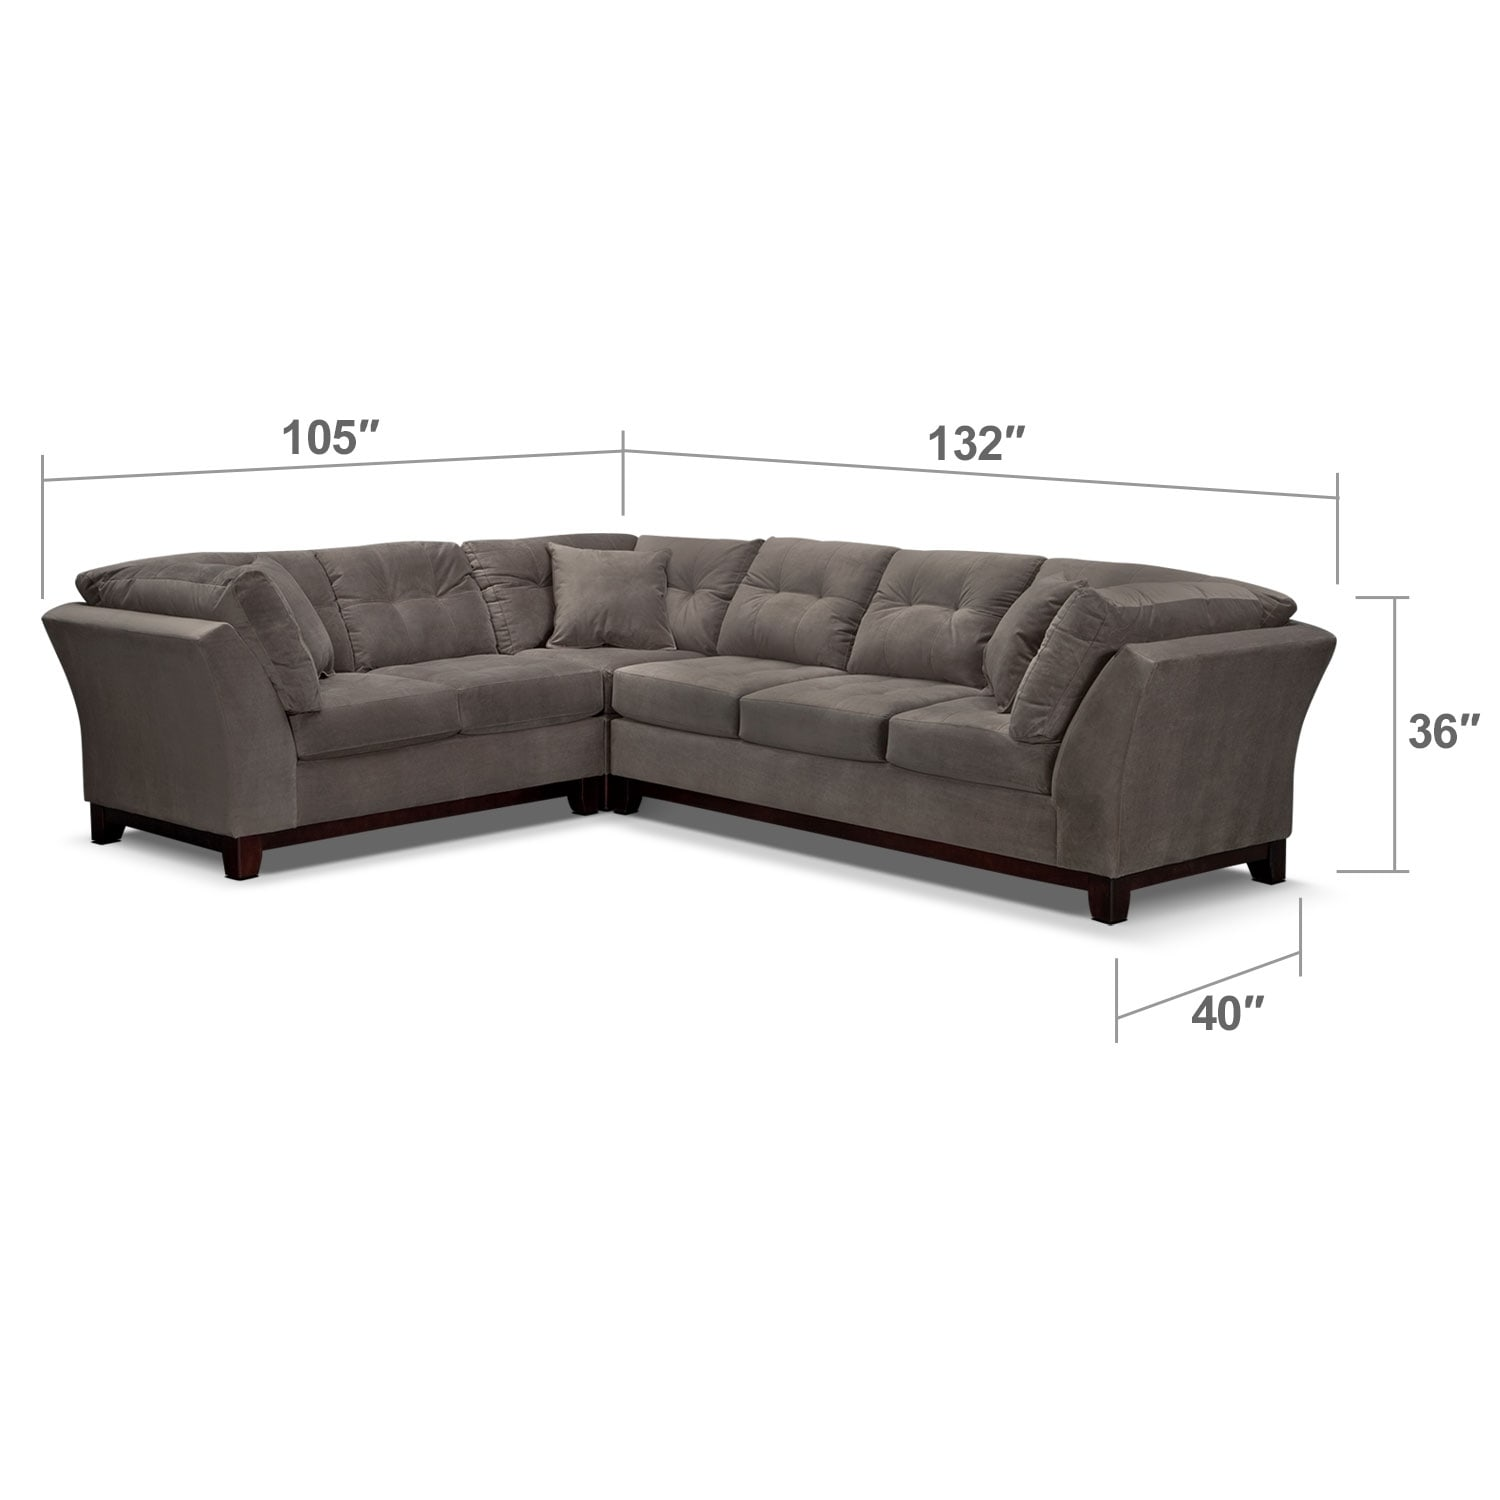 Living Room Furniture - Solace Gray II 3 Pc. Sectional